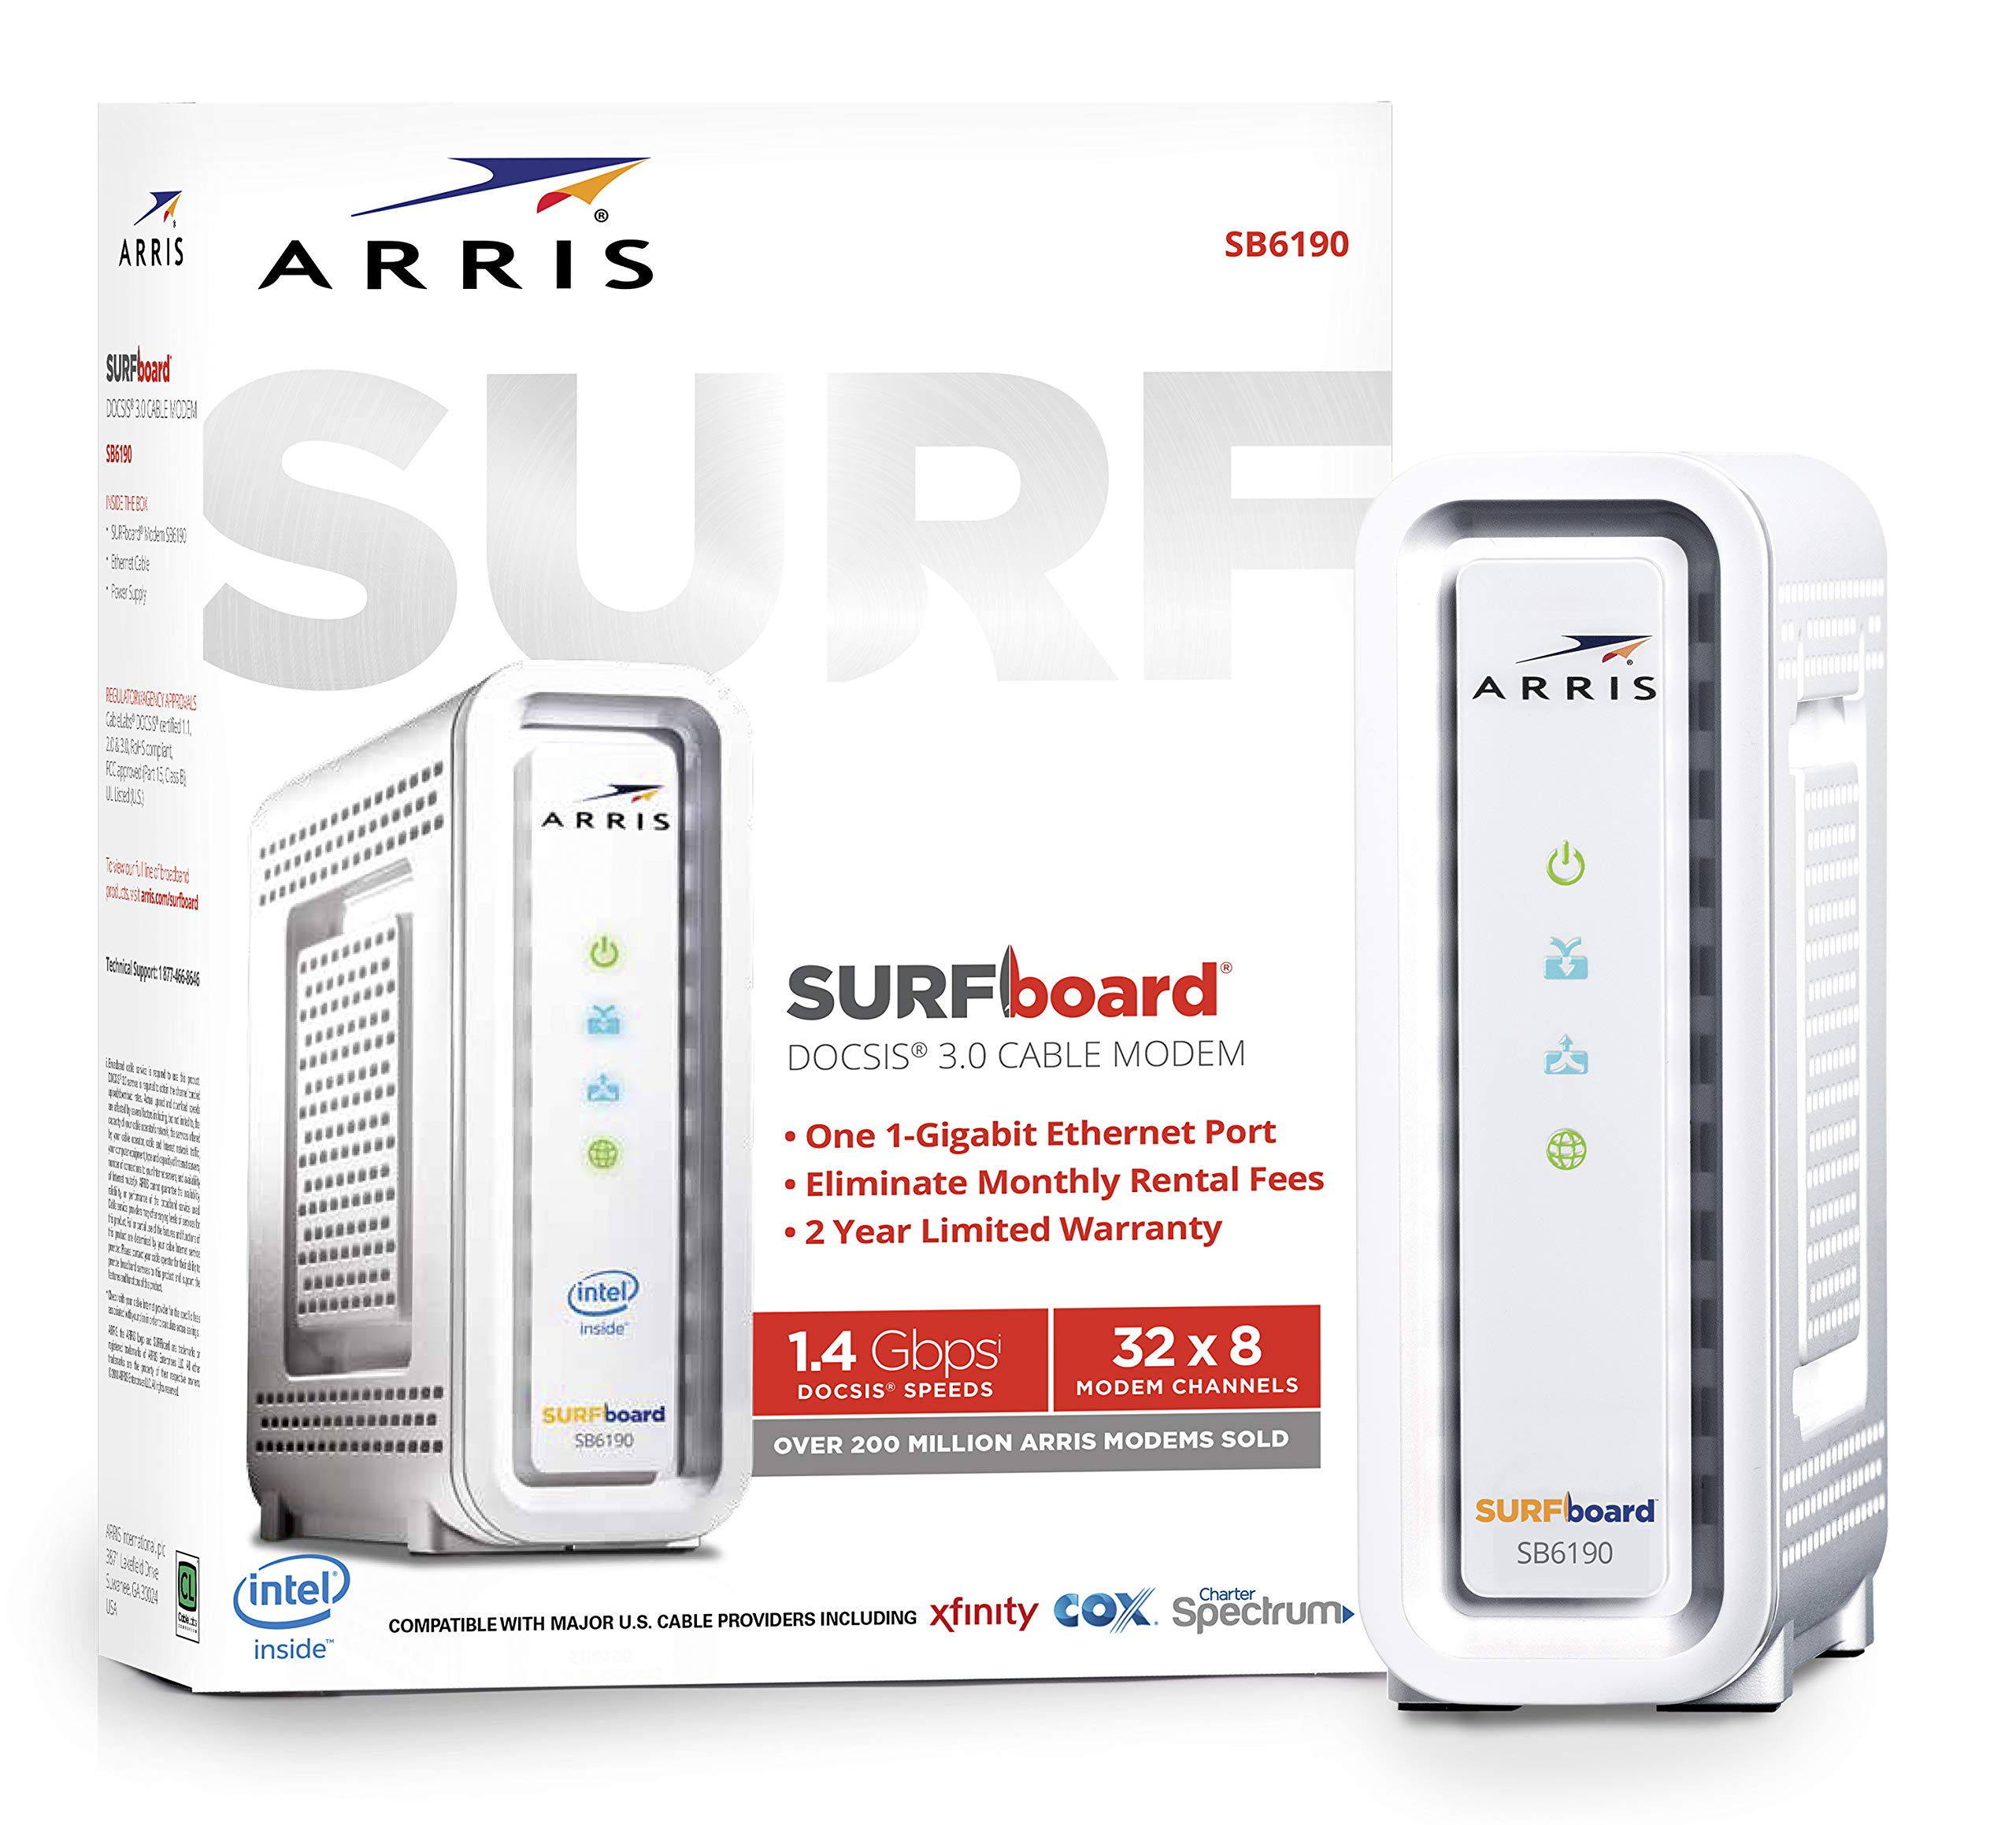 ARRIS SURFboard (32x8) Docsis 3.0 Cable Modem, Certified for Xfinity, Spectrum, Cox, Cablevision & More (SB6190 White) by ARRIS